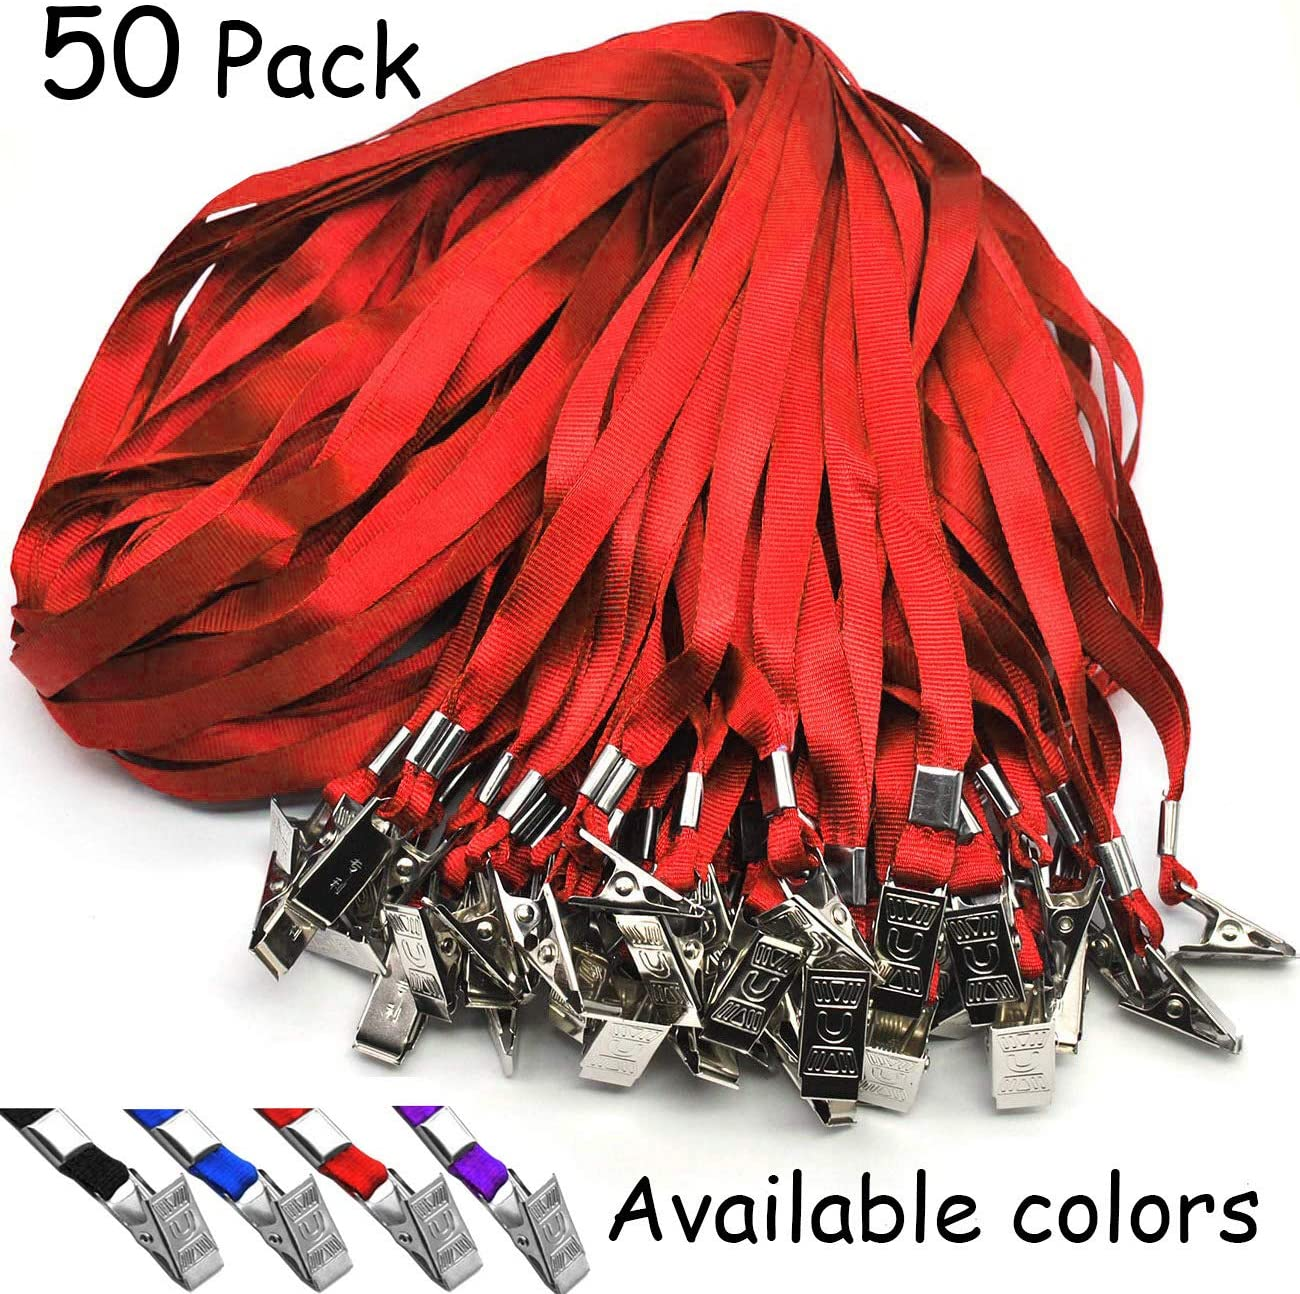 Red Lanyard Beebel 50pcs 32 inch Lanyards for ID Name Tag Badge Holders Or Other Portable Item (Red)